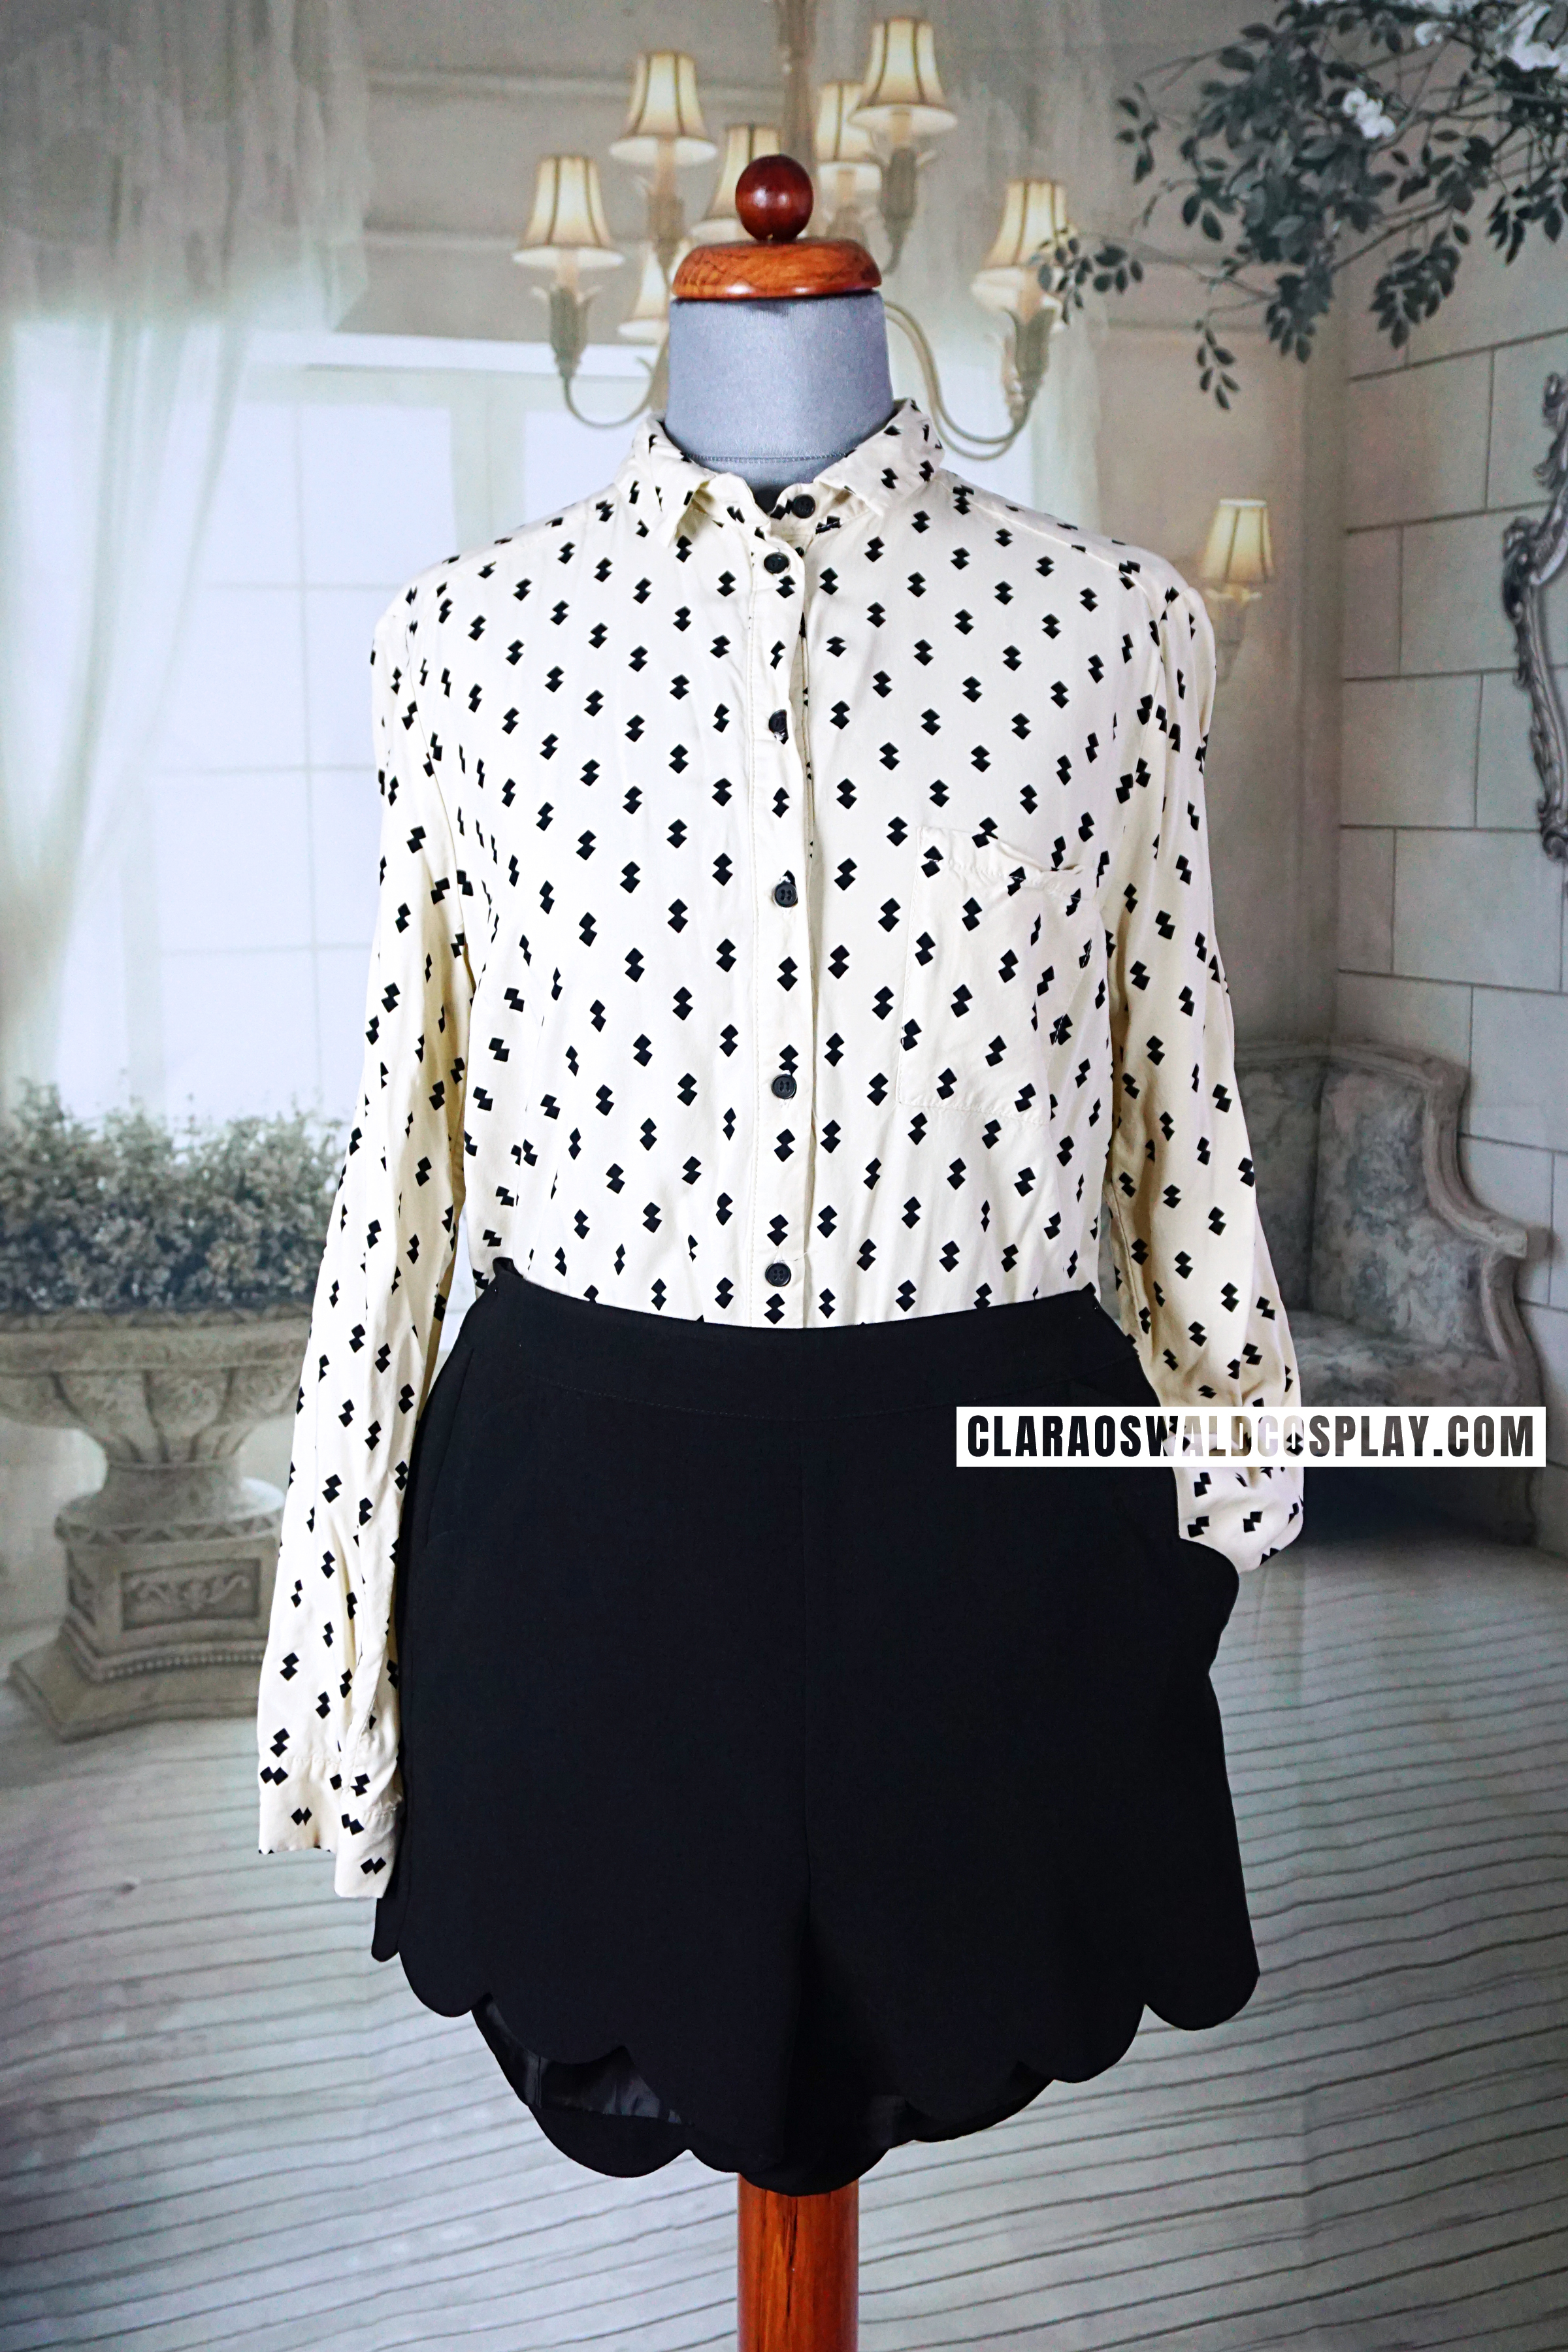 Clara Oswald's outfit from The Caretaker featuring the Topshop Diamond Print Blouse and Topshop Scallop Shorts